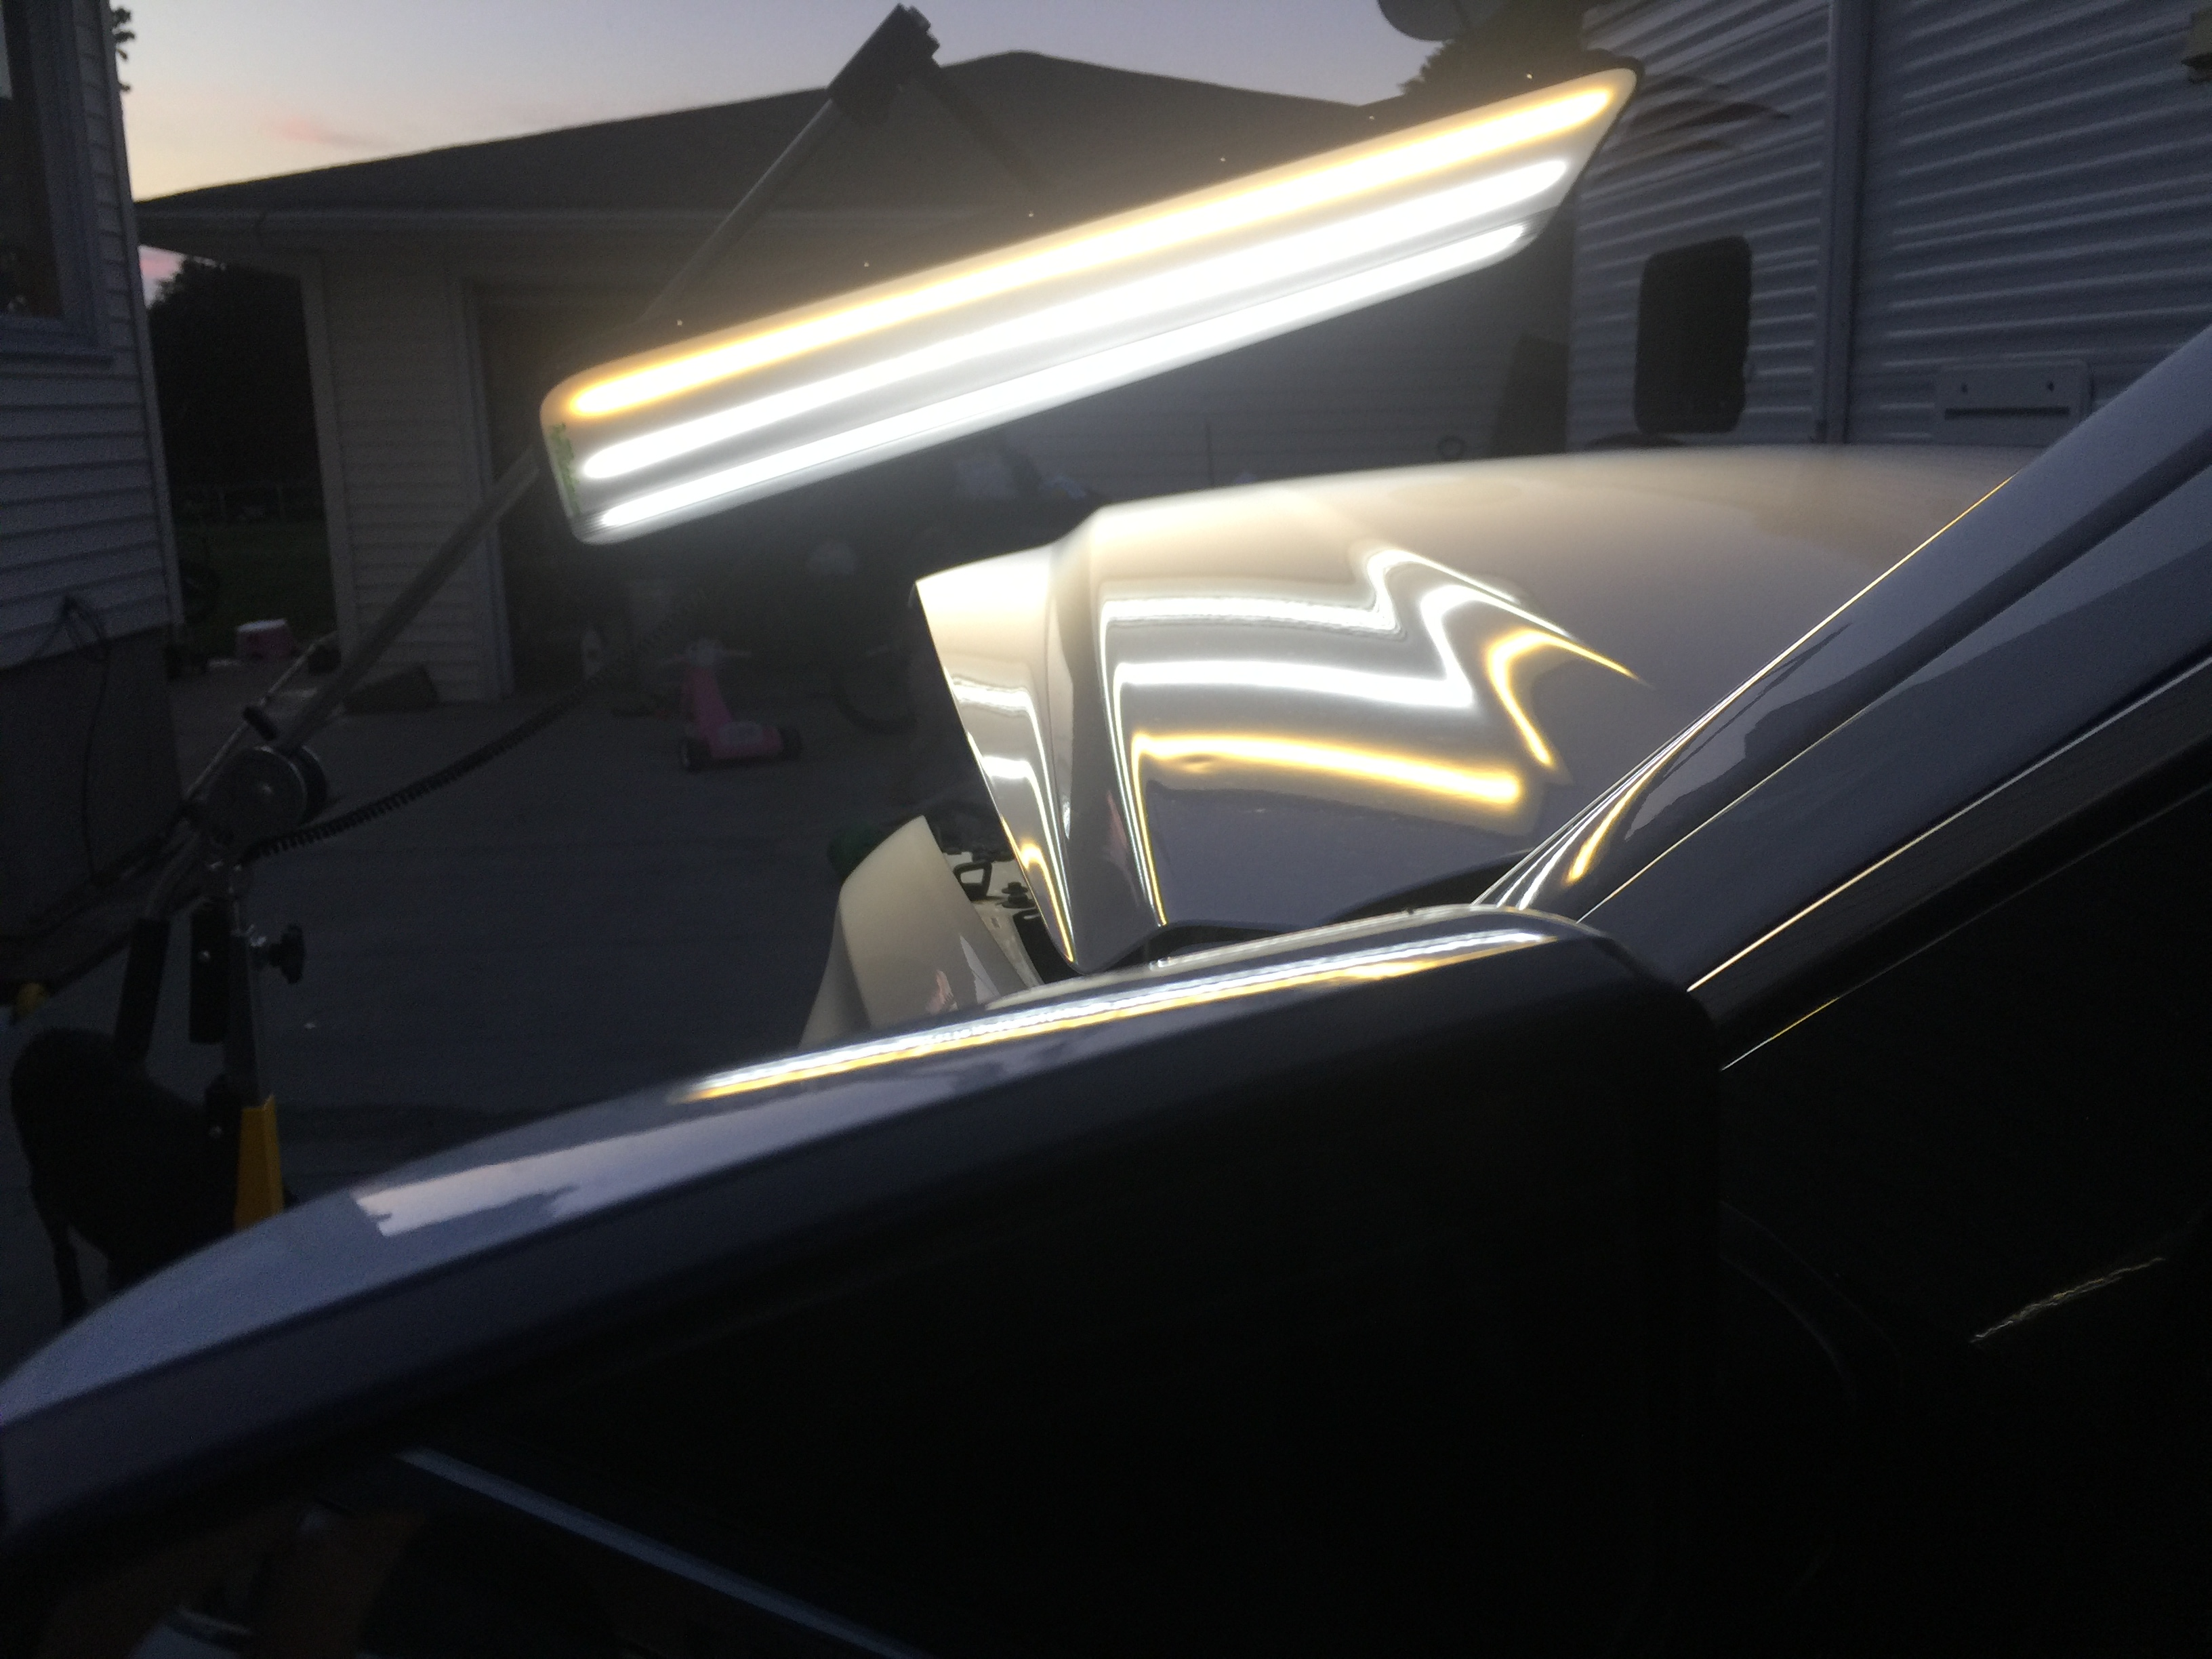 2016 Chevrolet Suburban, Dent Removal on Hood, Paintless Dent Removal Springfield IL, http://217dent.com